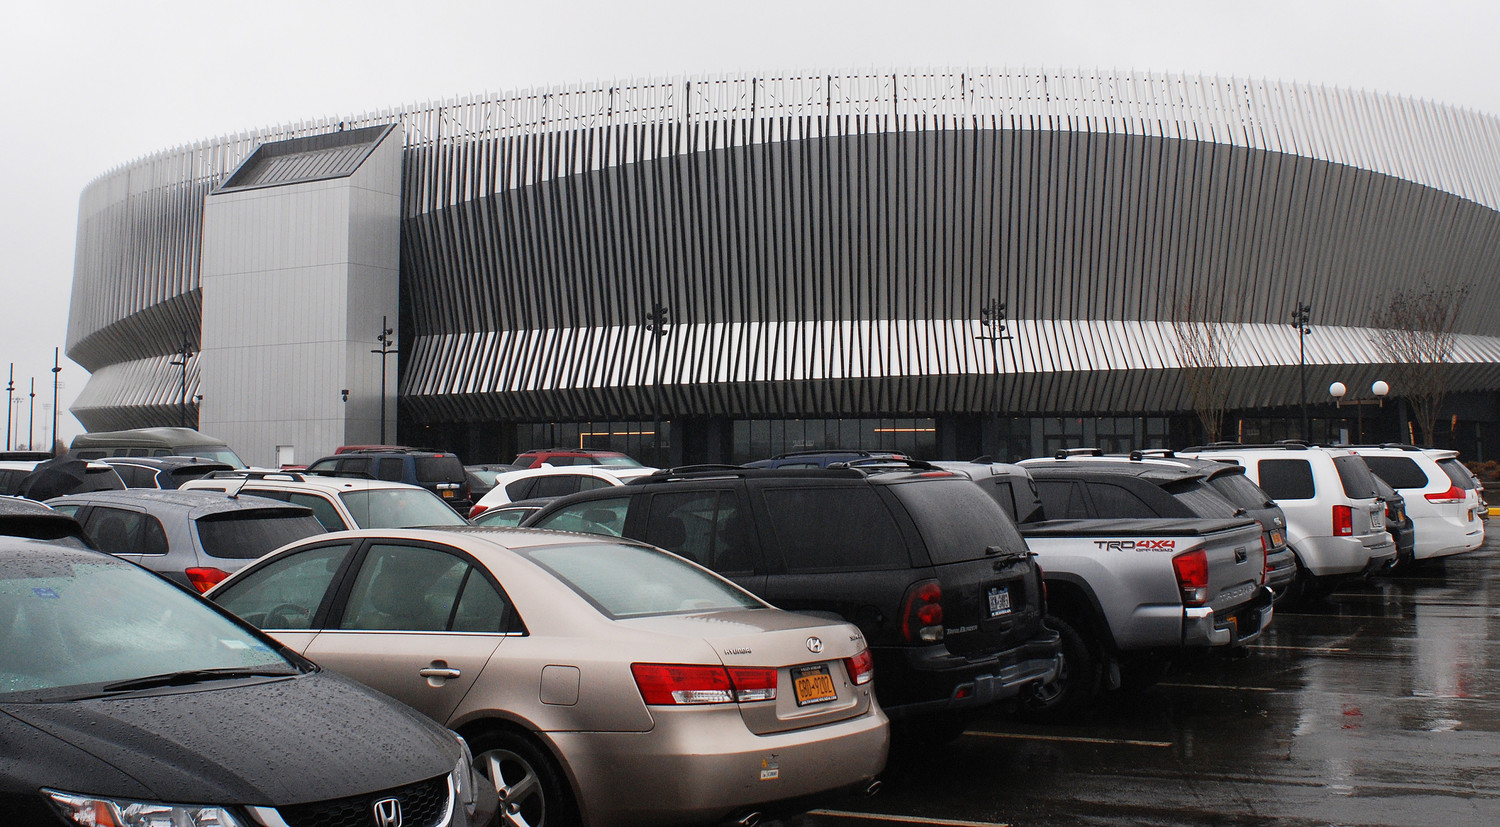 National Hockey League Commissioner Gary Bettman and the Islanders co-owner Jon Ledecky toured Nassau Coliseum on Jan. 9 to determine the adjustments needed for the Islanders to play at the venue again, Newsday reported.